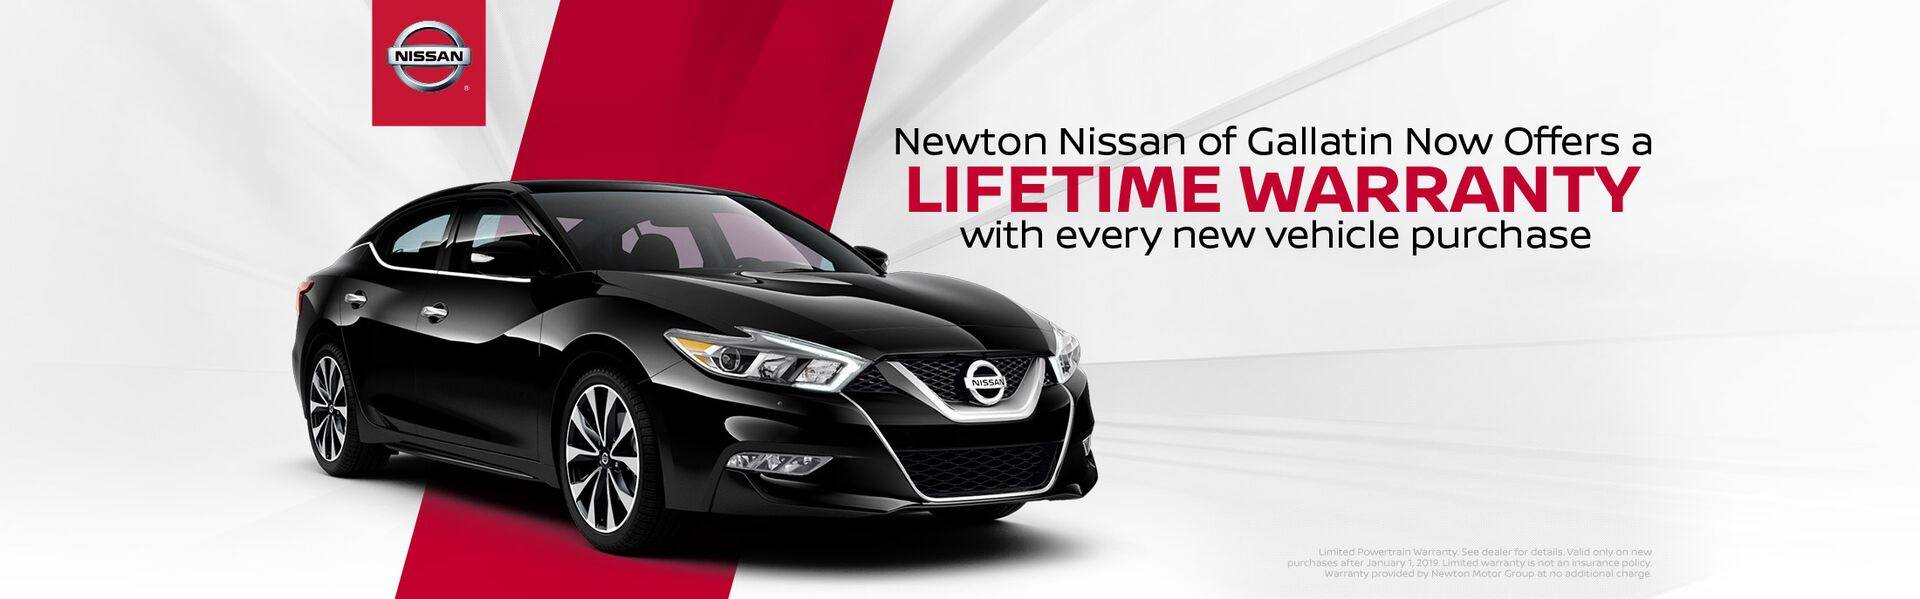 Newton Nissan Lifetime Warranty